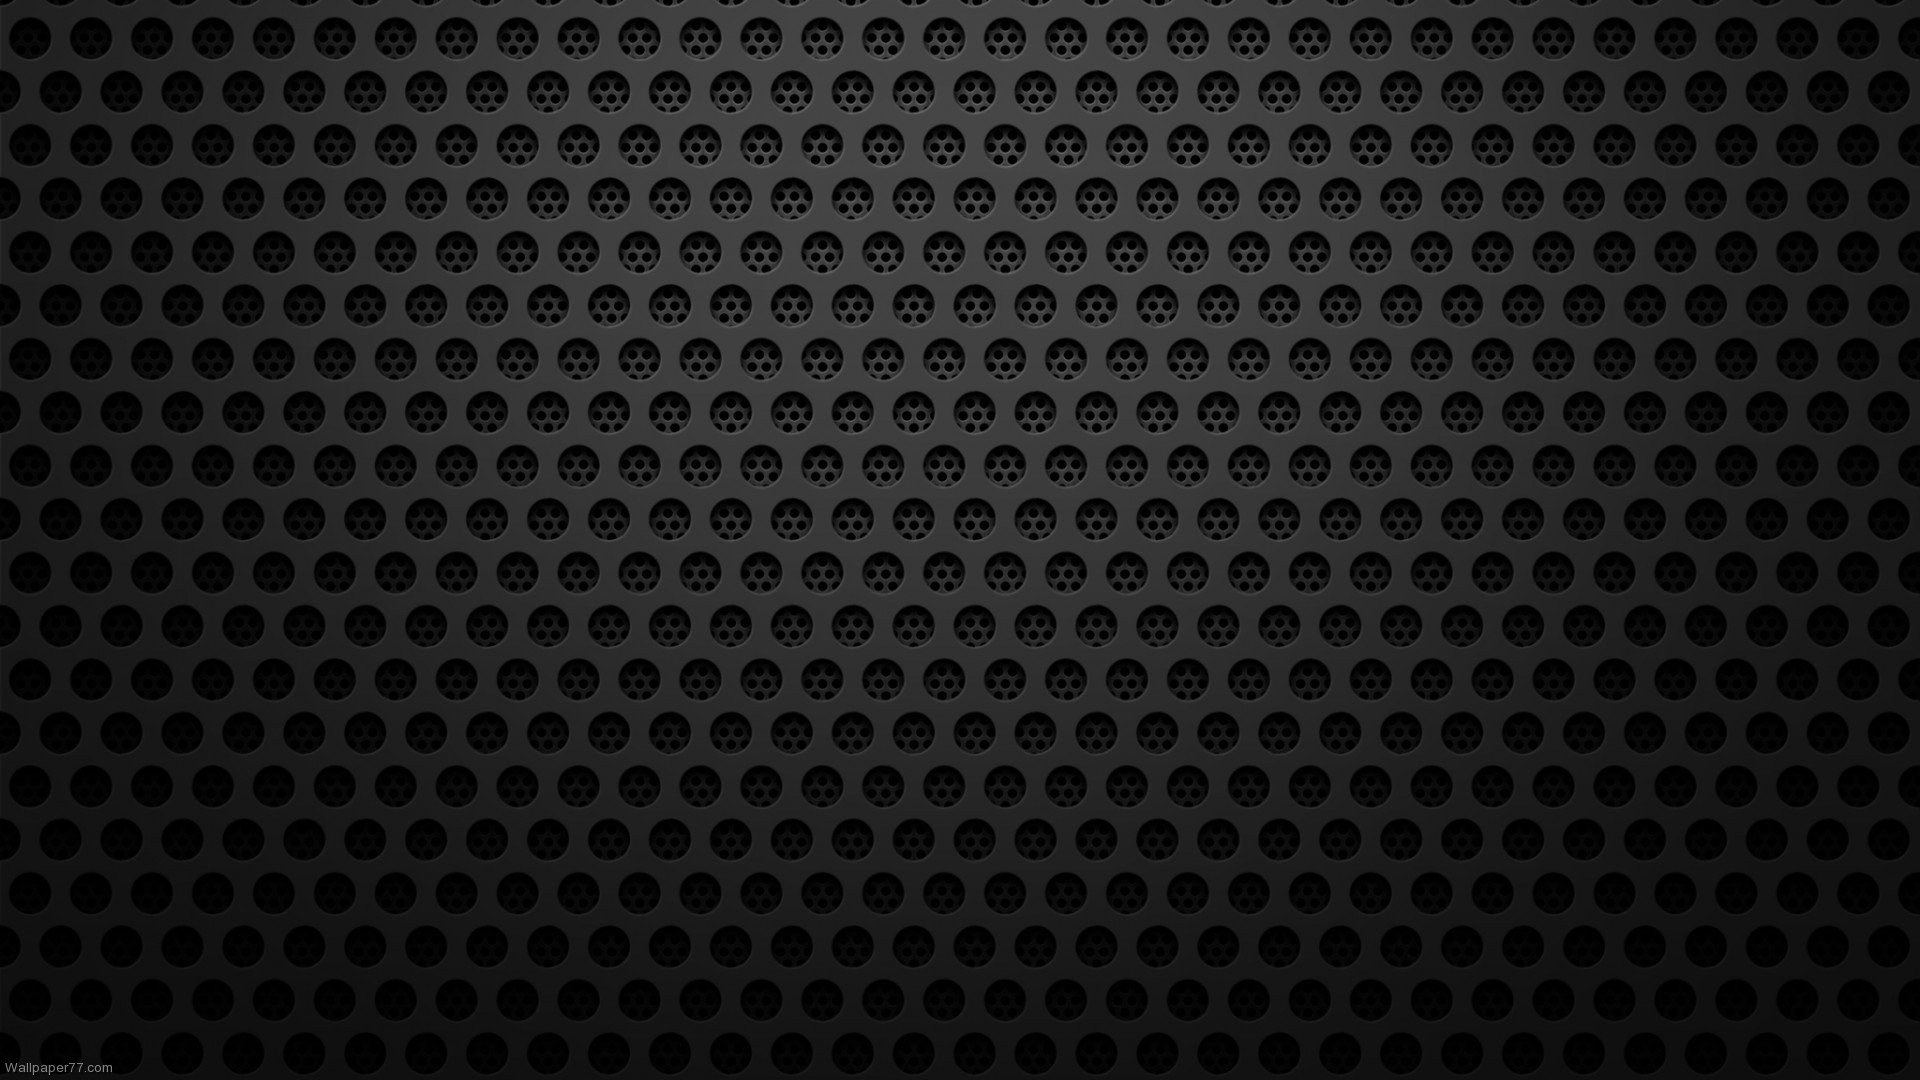 40 Free Hd Retina Display Ipad 3 Wallpapers: Black Honeycomb Wallpaper